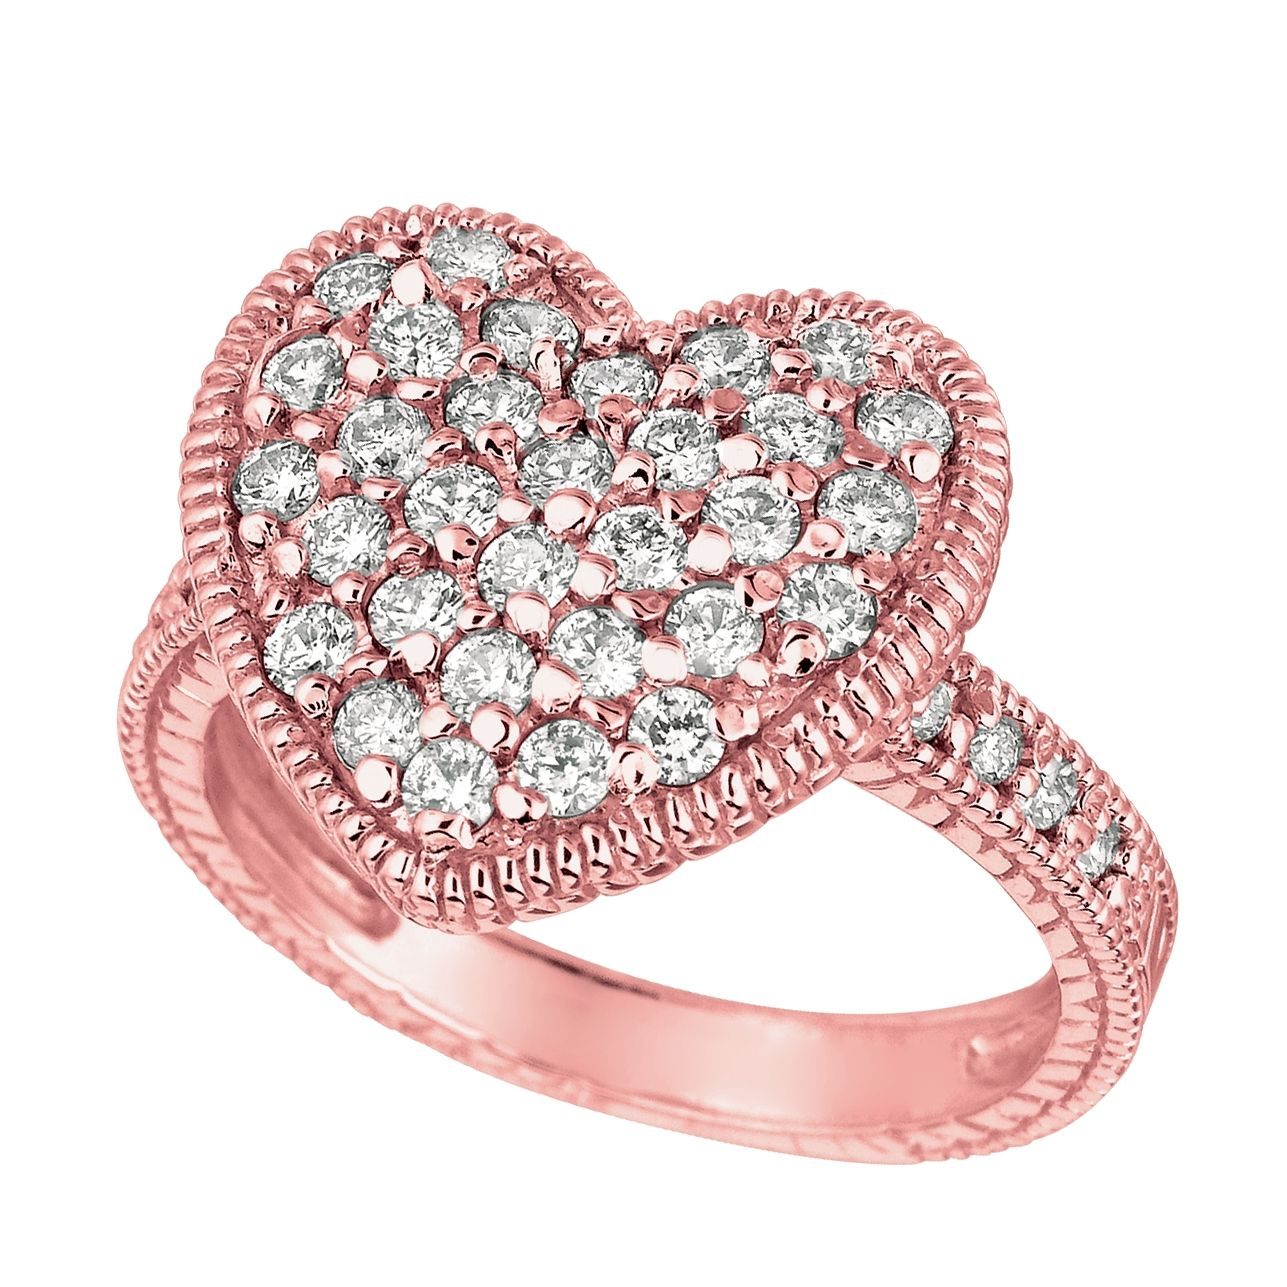 diamond lake sets rings corrals engagement shape heart side ring wedding shaped pink